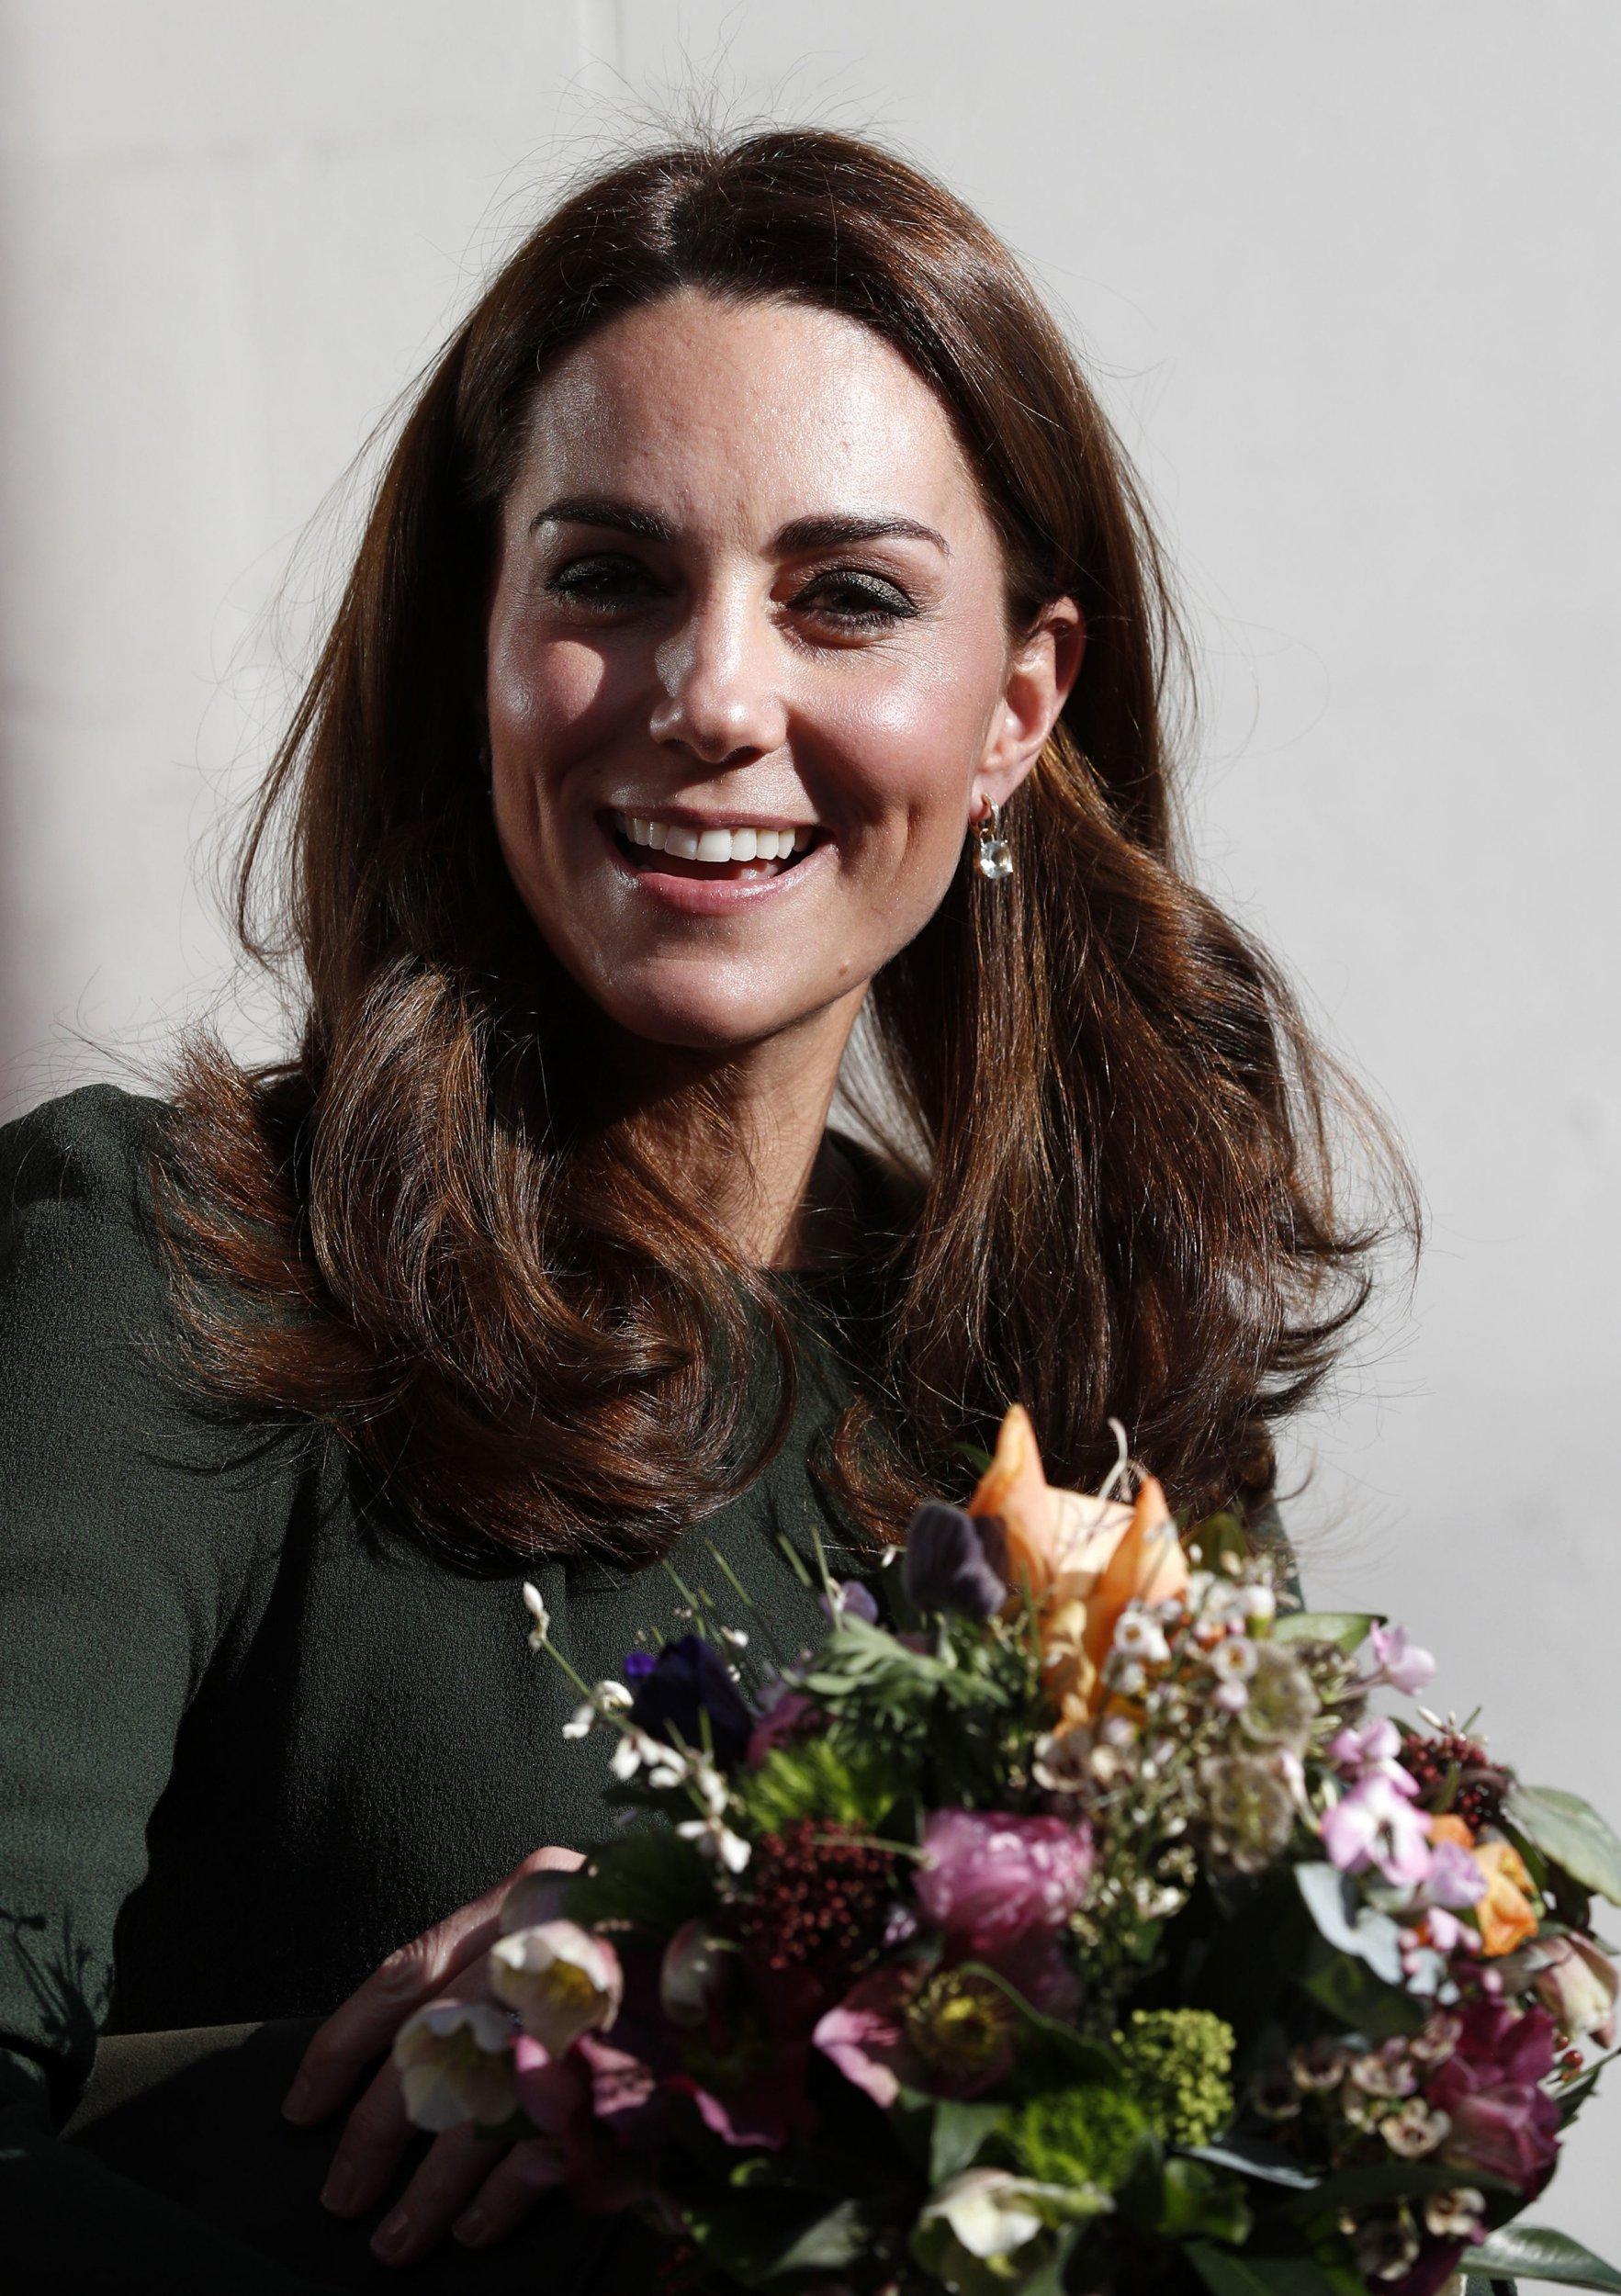 The Duchess of Cambridge leaves after a visit to Family Action charity?s Lewisham base in Forest Hill, Lewisham, London, where she will meet with families, young carers and the volunteers. PRESS ASSOCIATION Photo. Picture date: Tuesday January 22, 2019. See PA story ROYAL Kate. Photo credit should read: Adrian Dennis/PA Wire